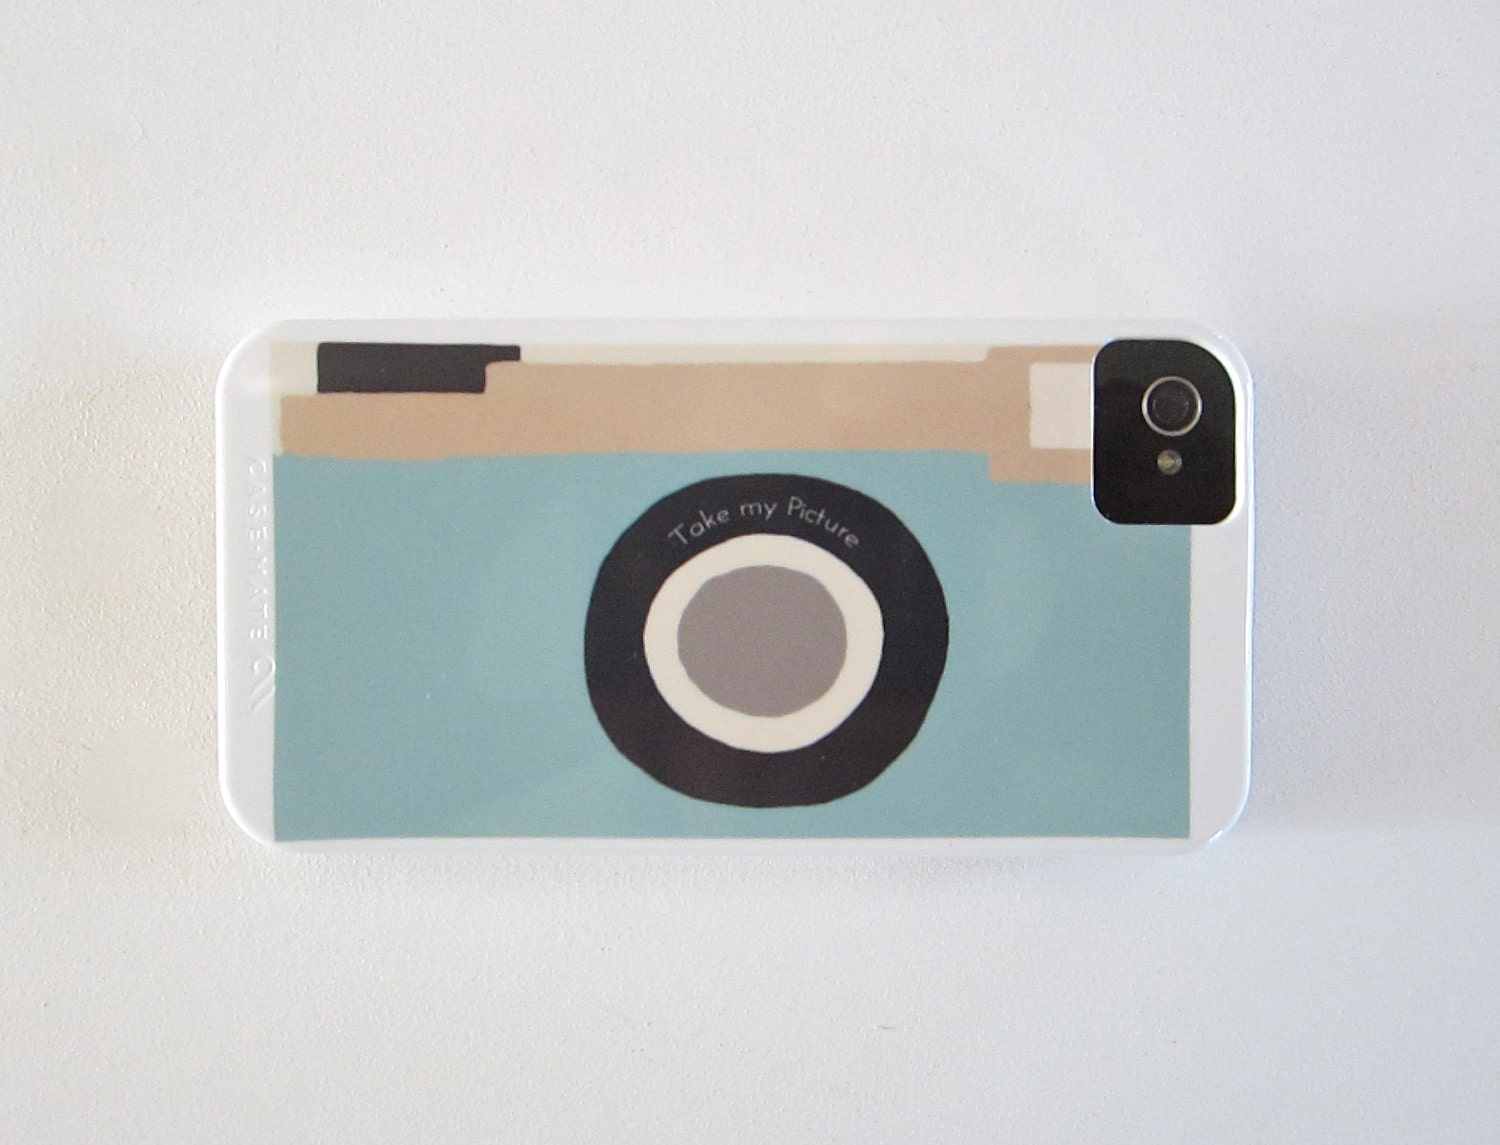 Camera Blue Vintage Retro  IPhone 4/4s case Modern aqua cockatoo redtilestudio